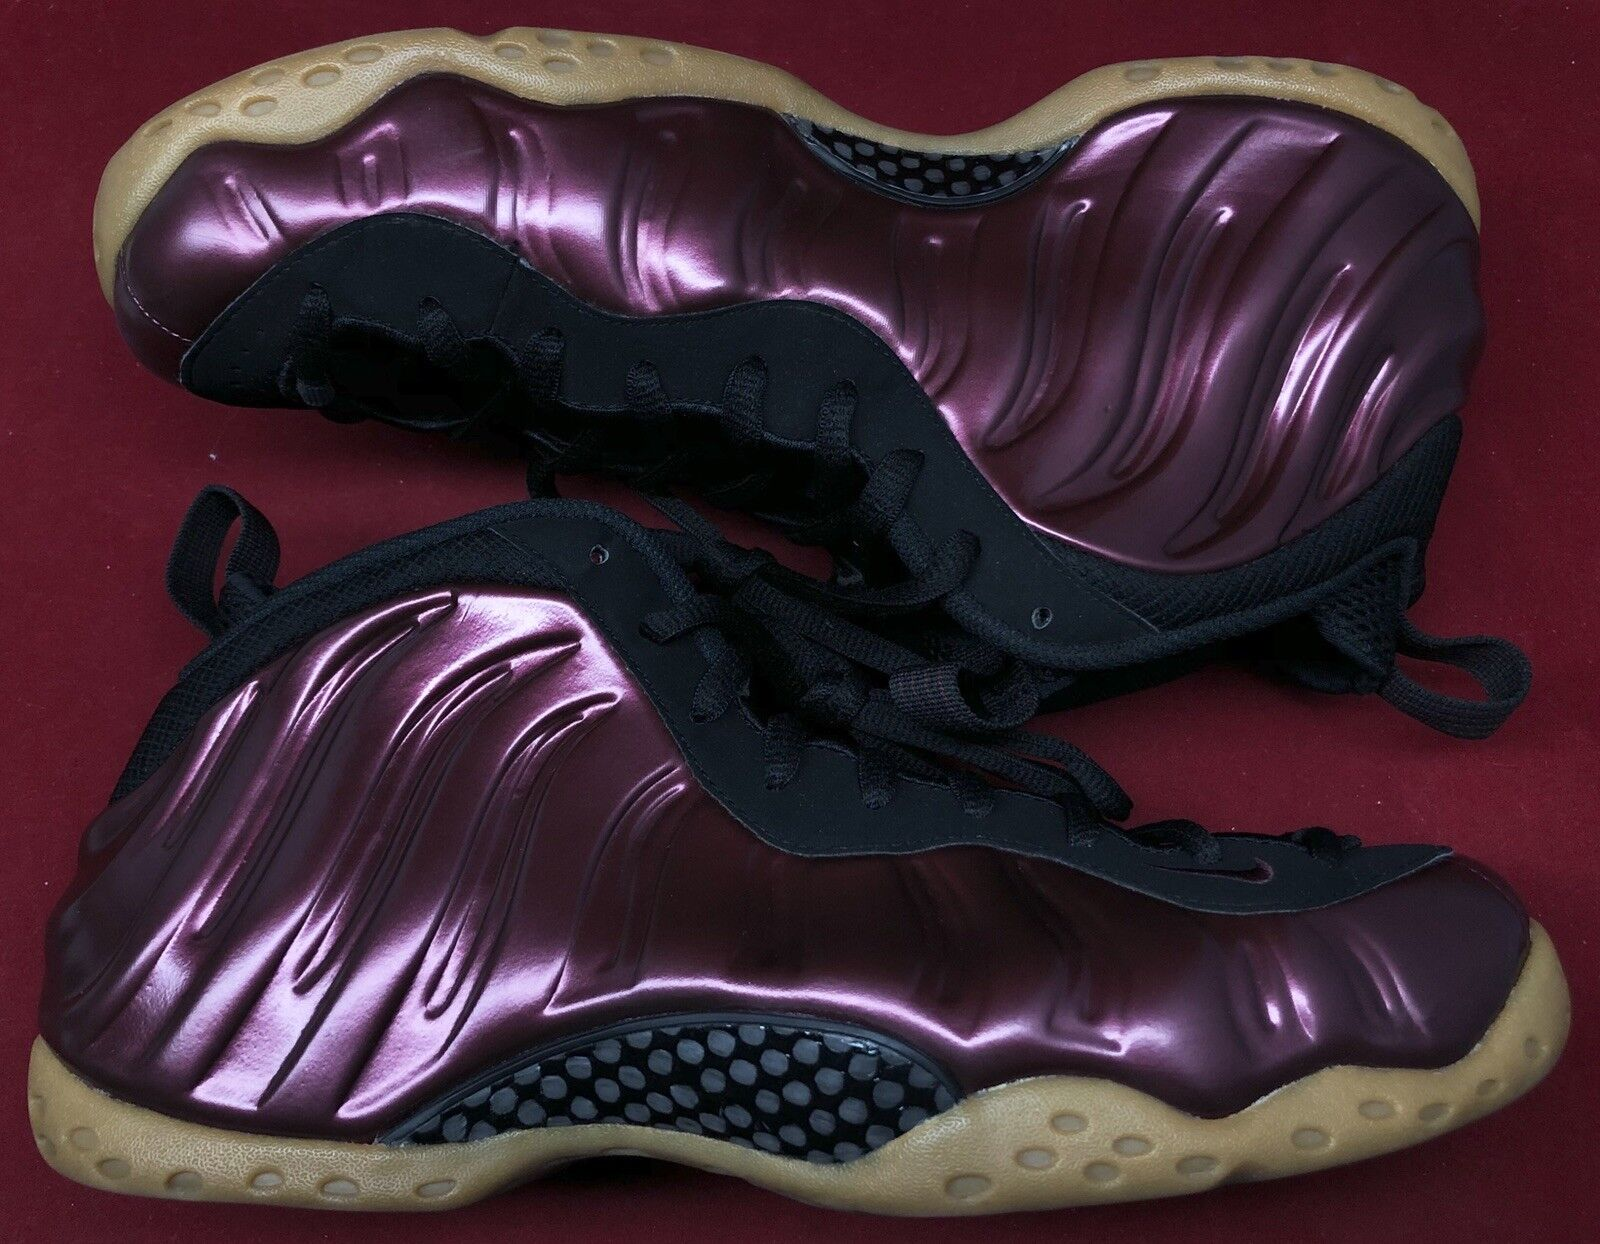 Nike Foamposite One Night Maroon Gum Black Burgundy 314996-601 Sz 10.5